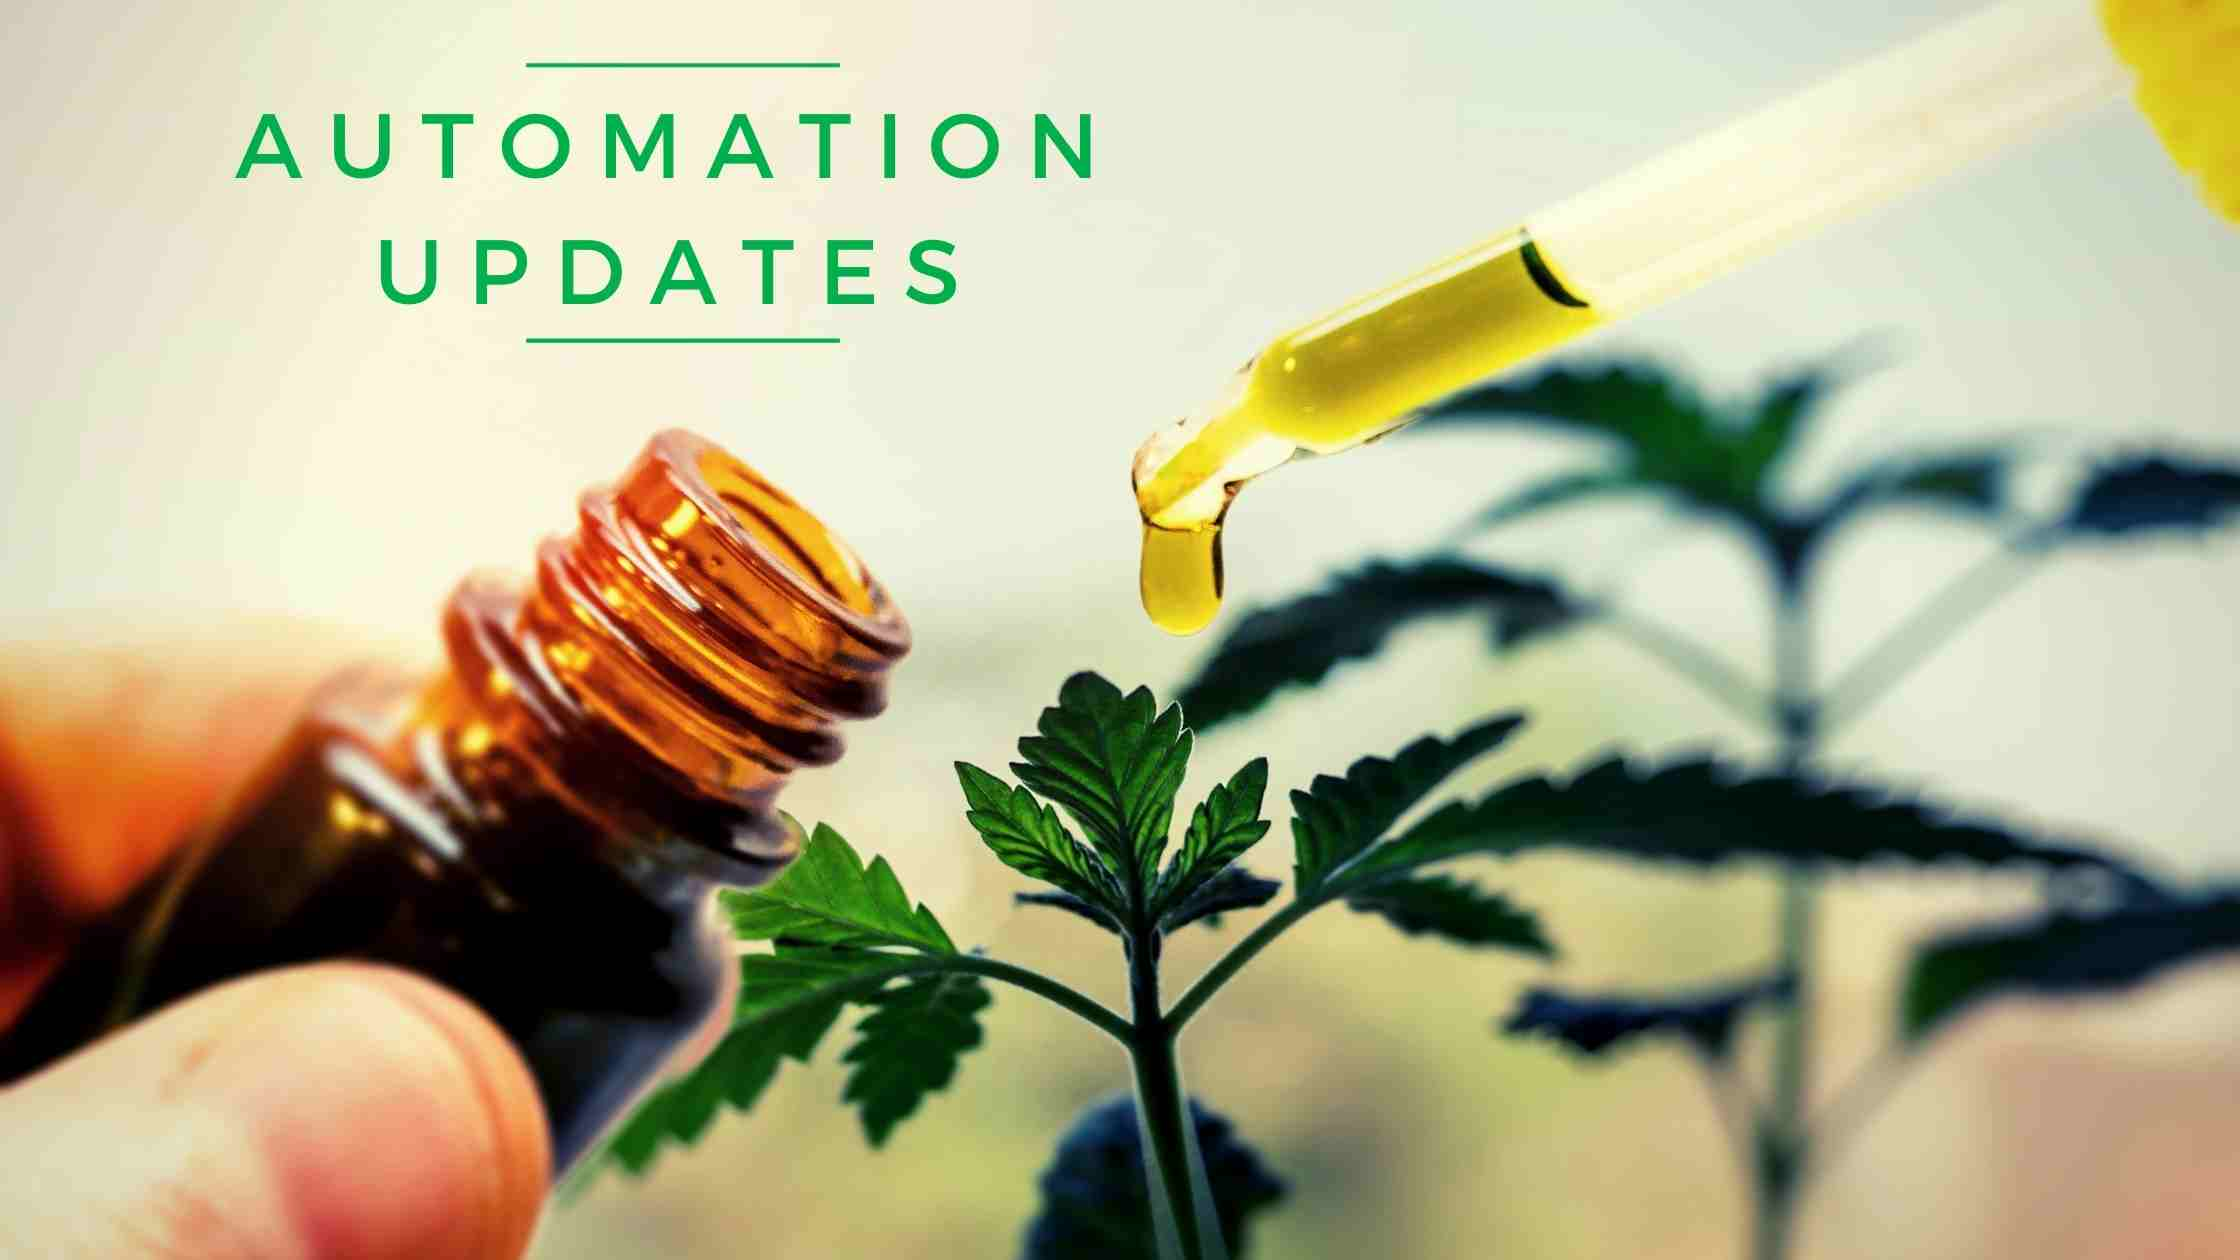 automation update banner